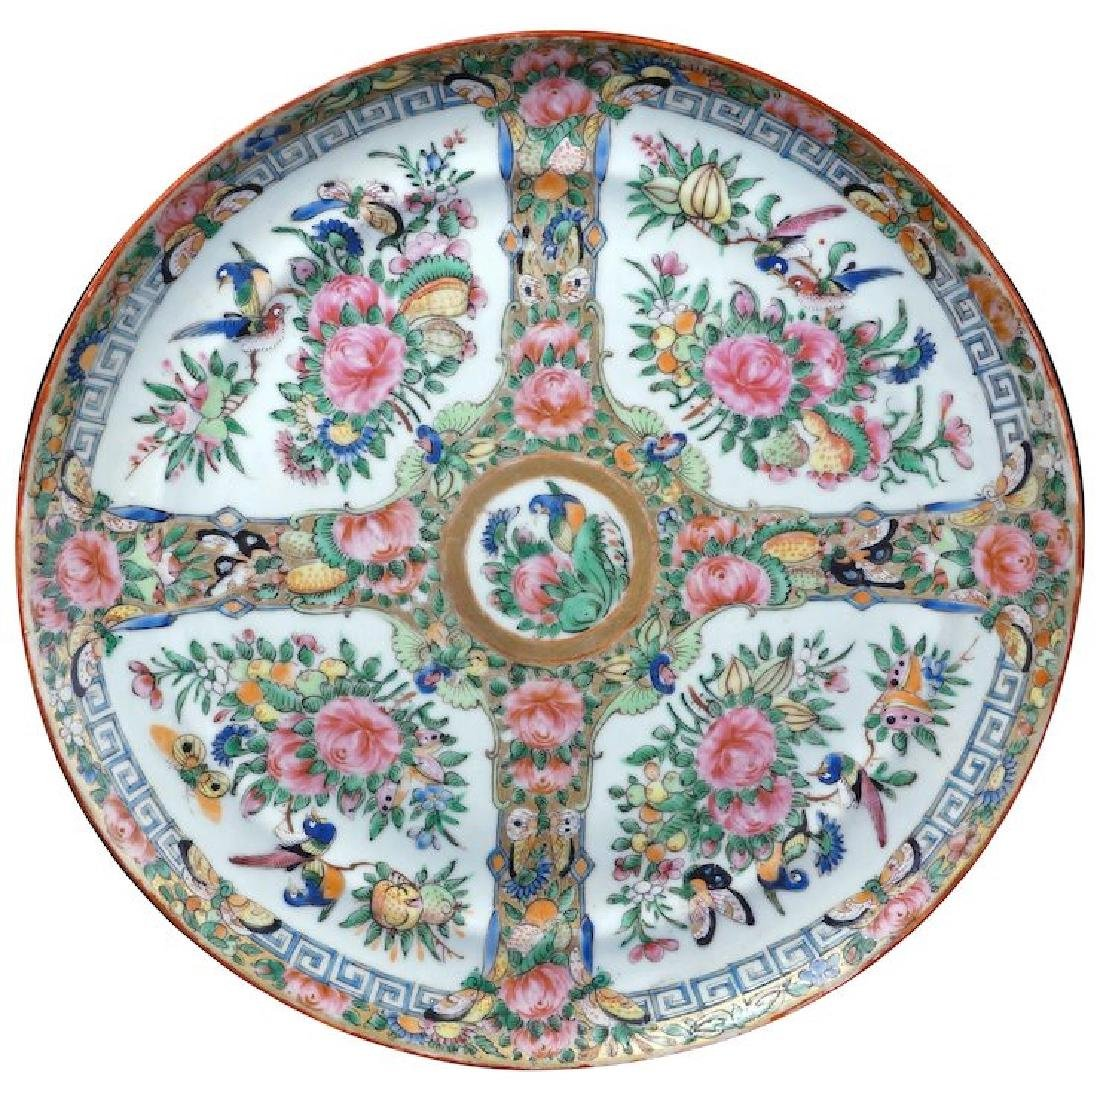 Large Chinese porcelain rose medallion 10†plate 19th